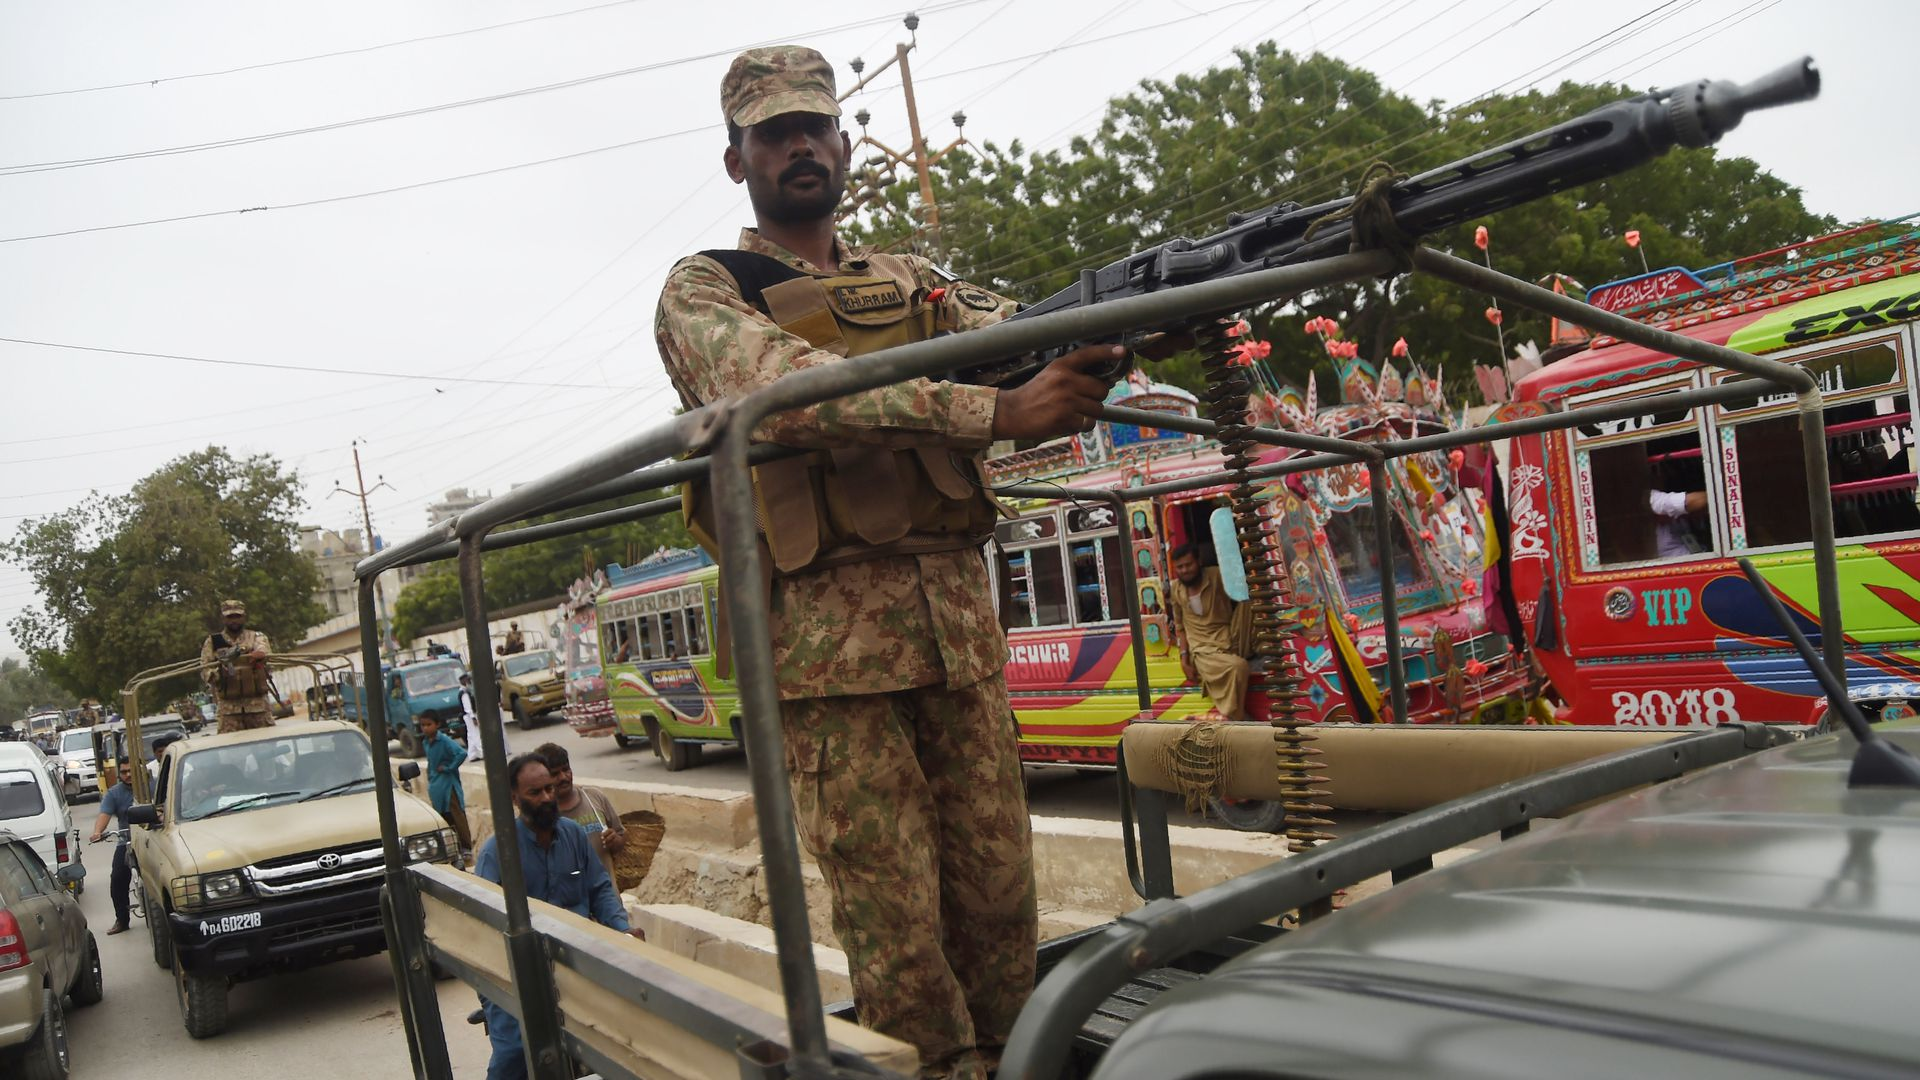 Pakistani soldiers patrol a street in an armored truck in the port city of Karachi on July 24, 2018.